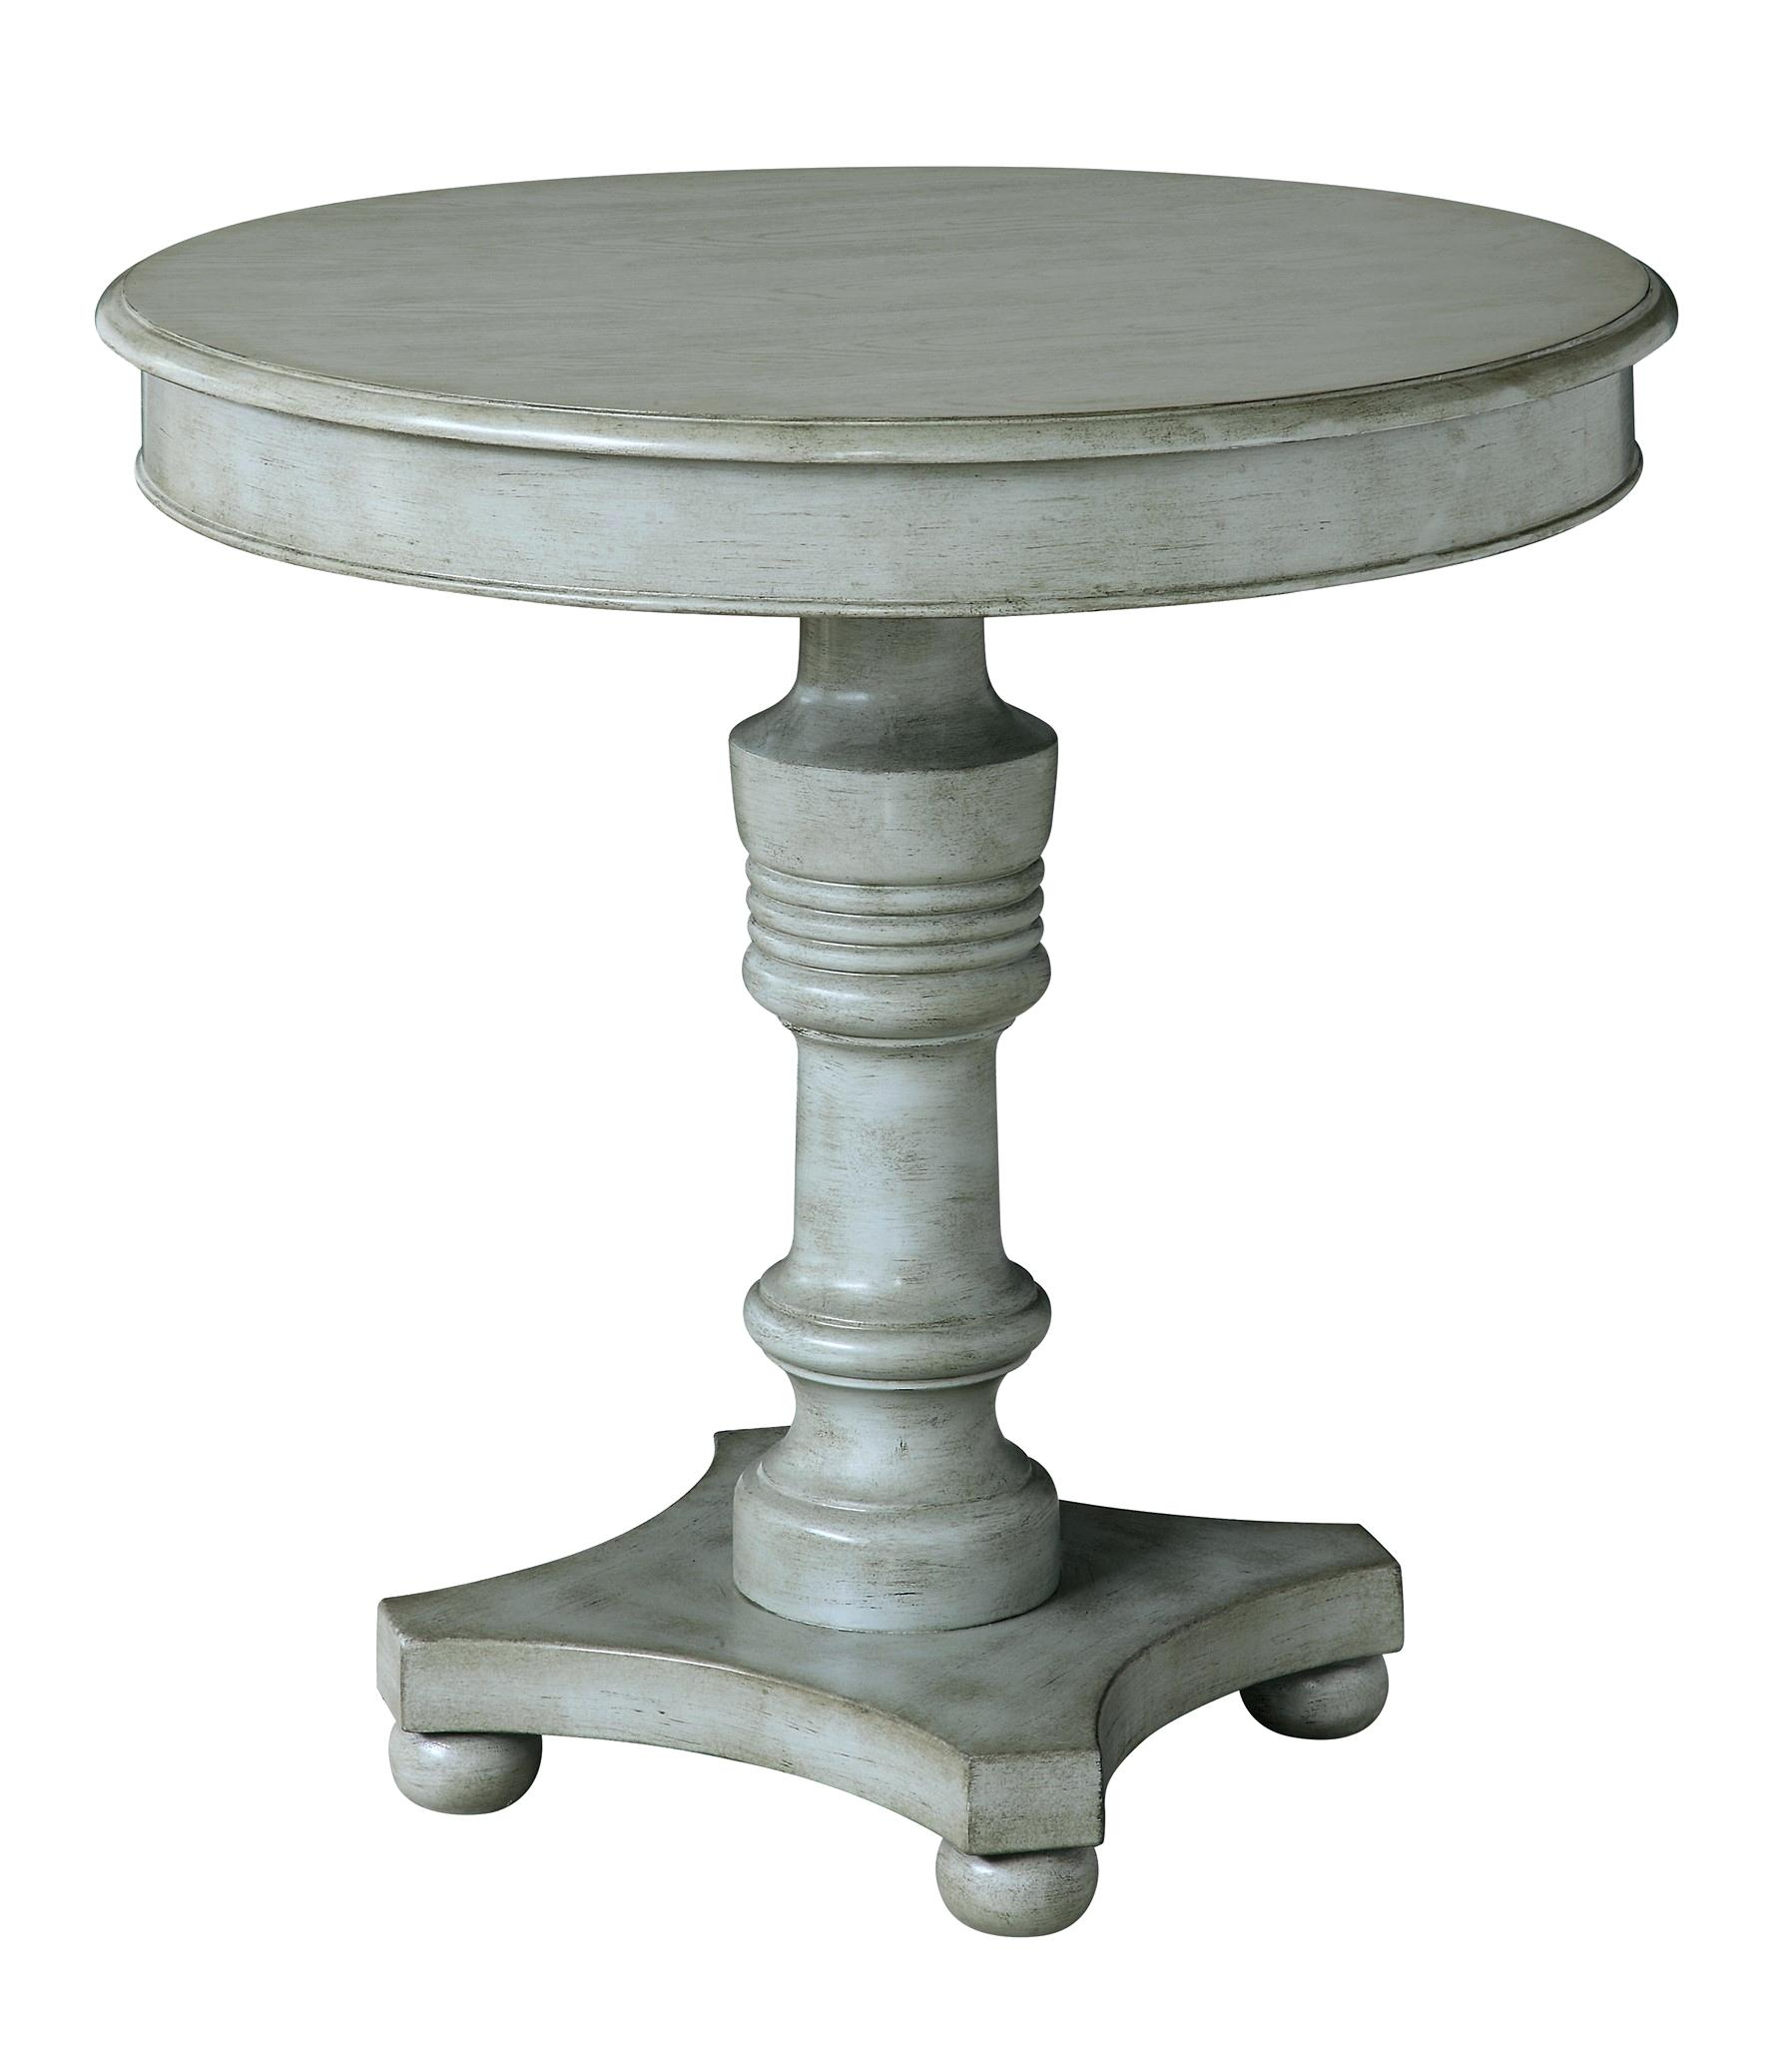 gray accent table grey night stands small antiqued turned post round luxury lamps white coffee glass black wrought iron with top furniture paint central outdoor battery ott